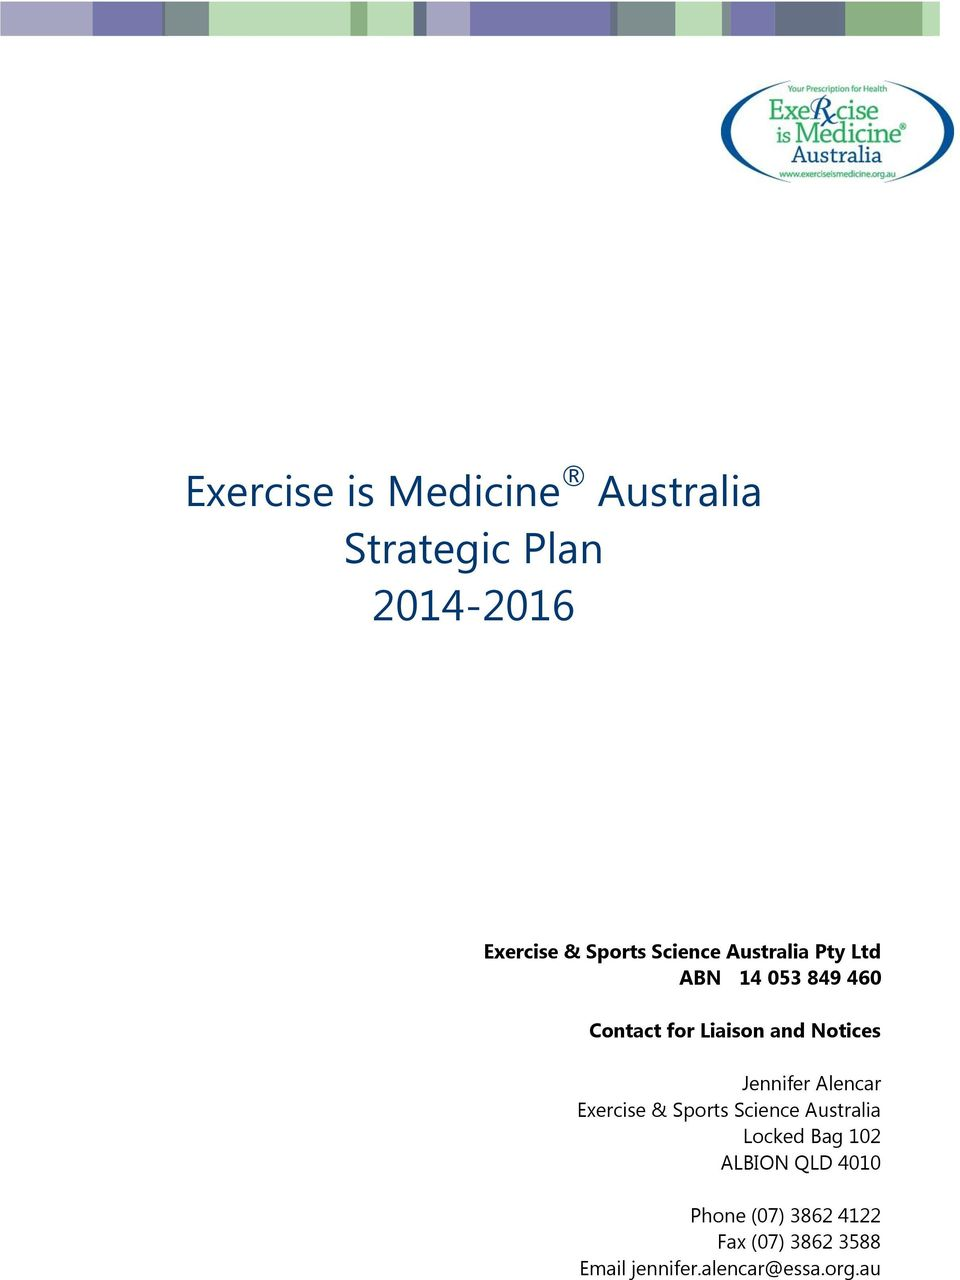 Exercise & Sports Science Australia Locked Bag 102 ALBION QLD 4010